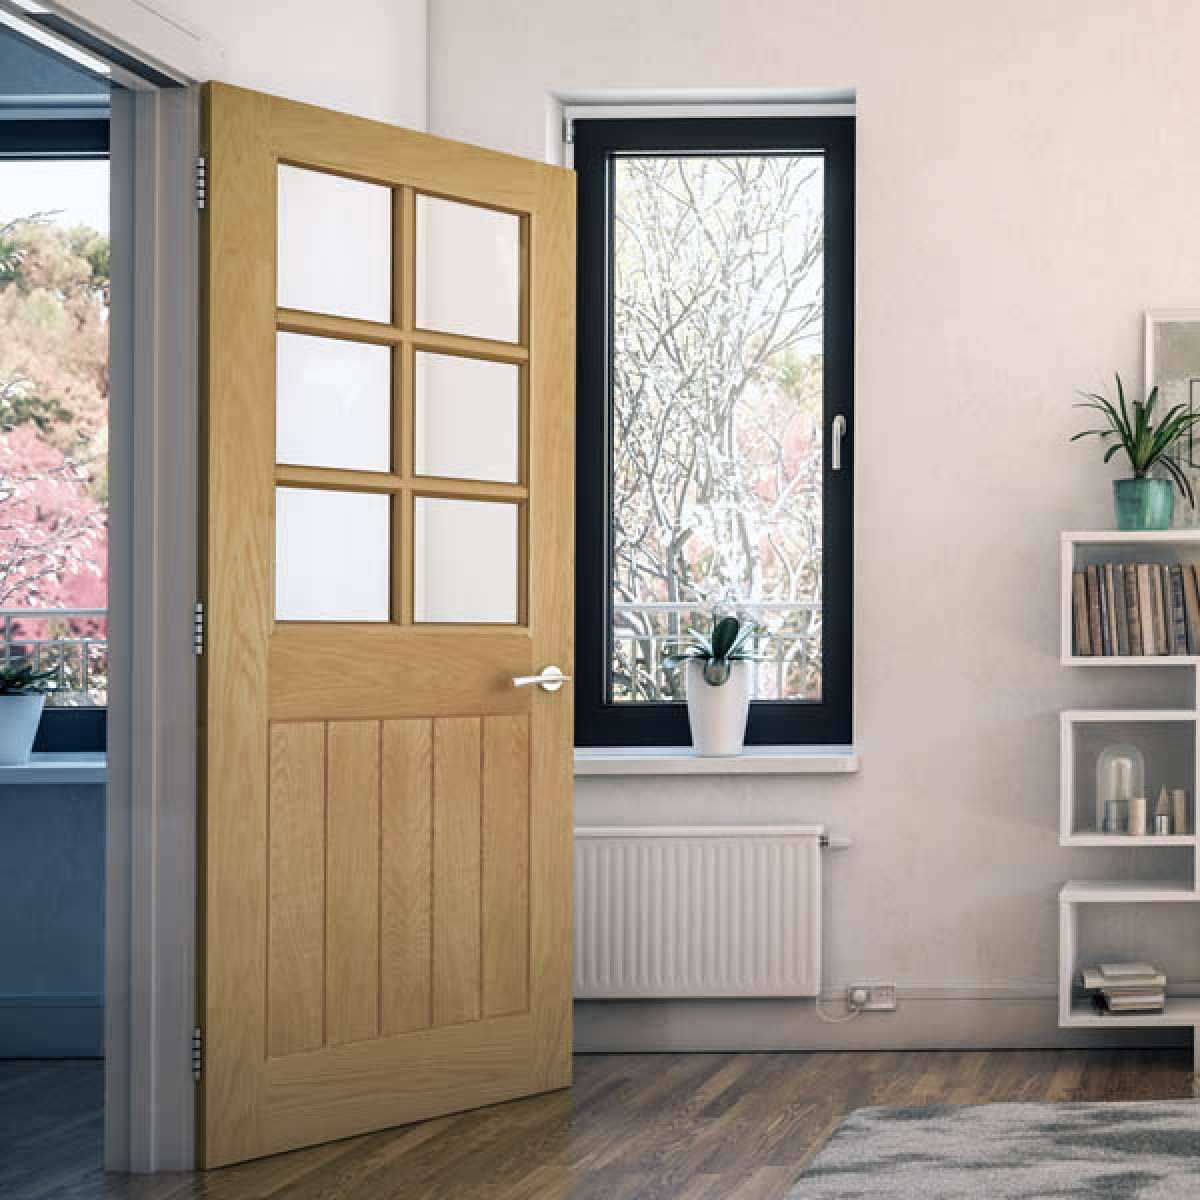 Ely 6l oak glazed lifestyle websters Image by Websters Timber